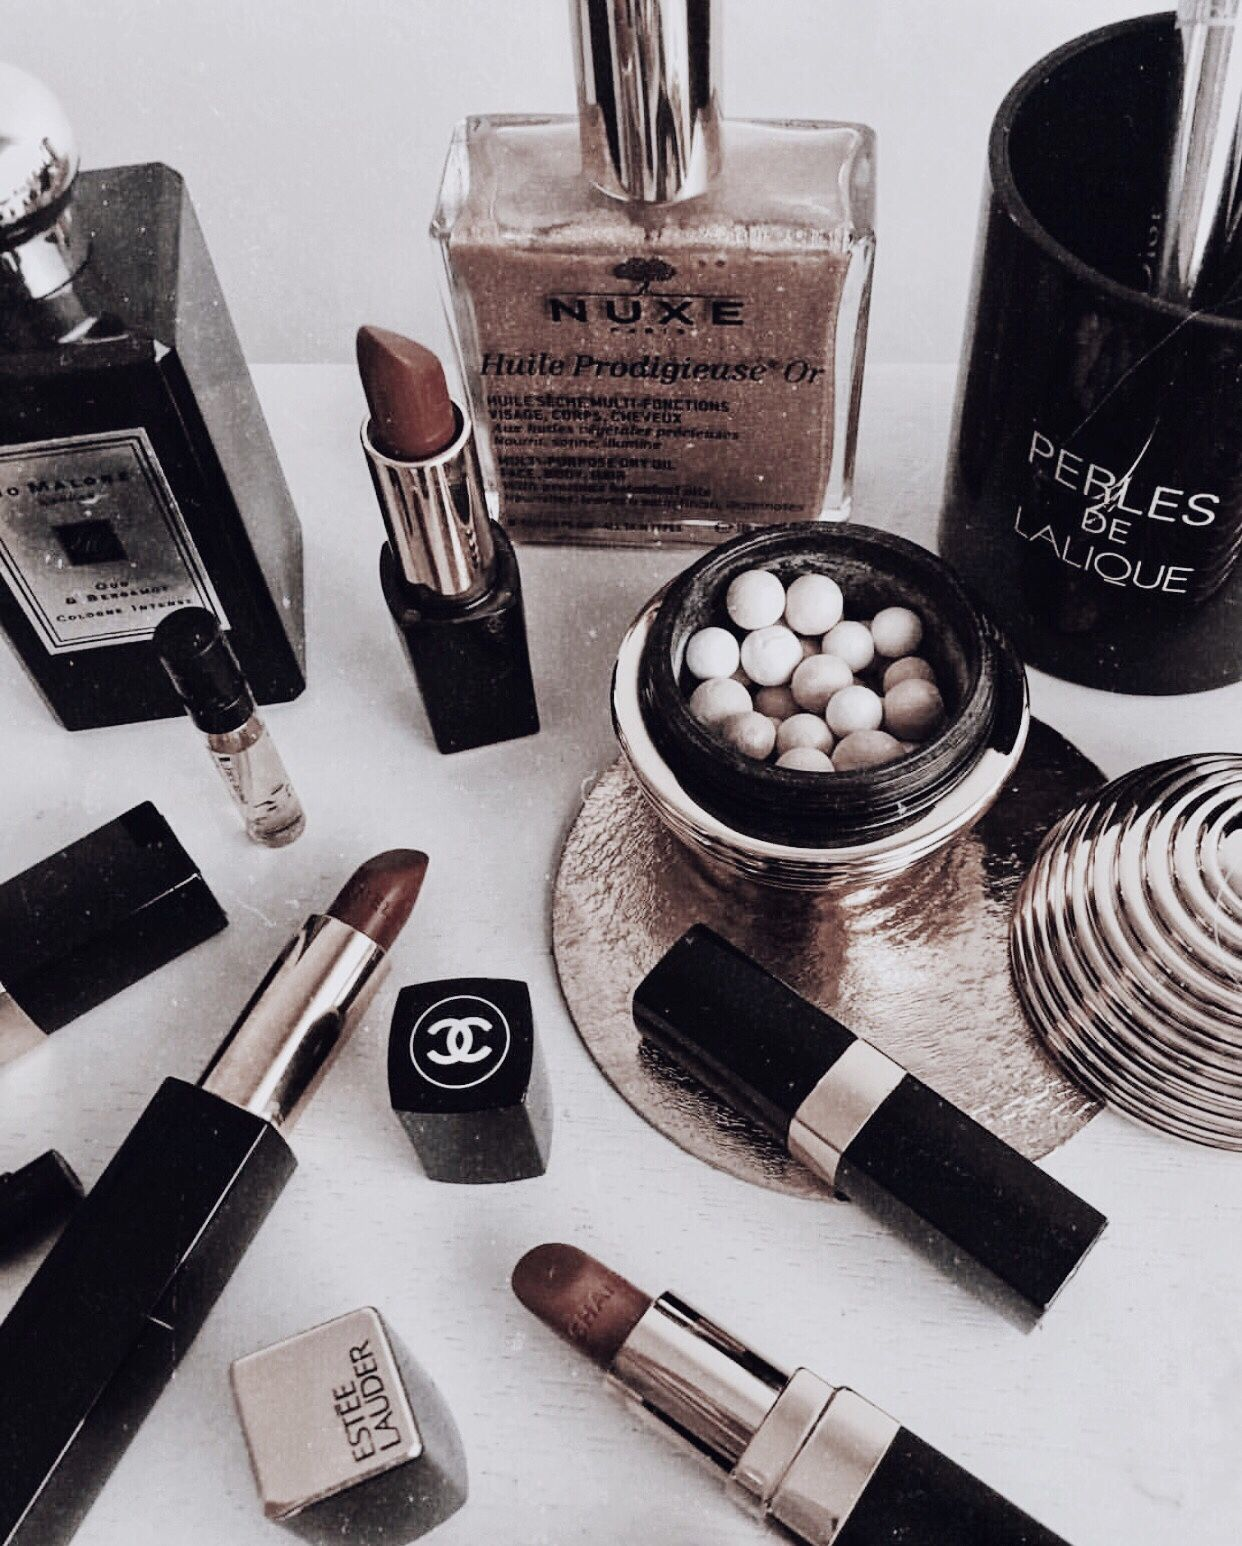 highendbathroombrands High end makeup brands, Makeup